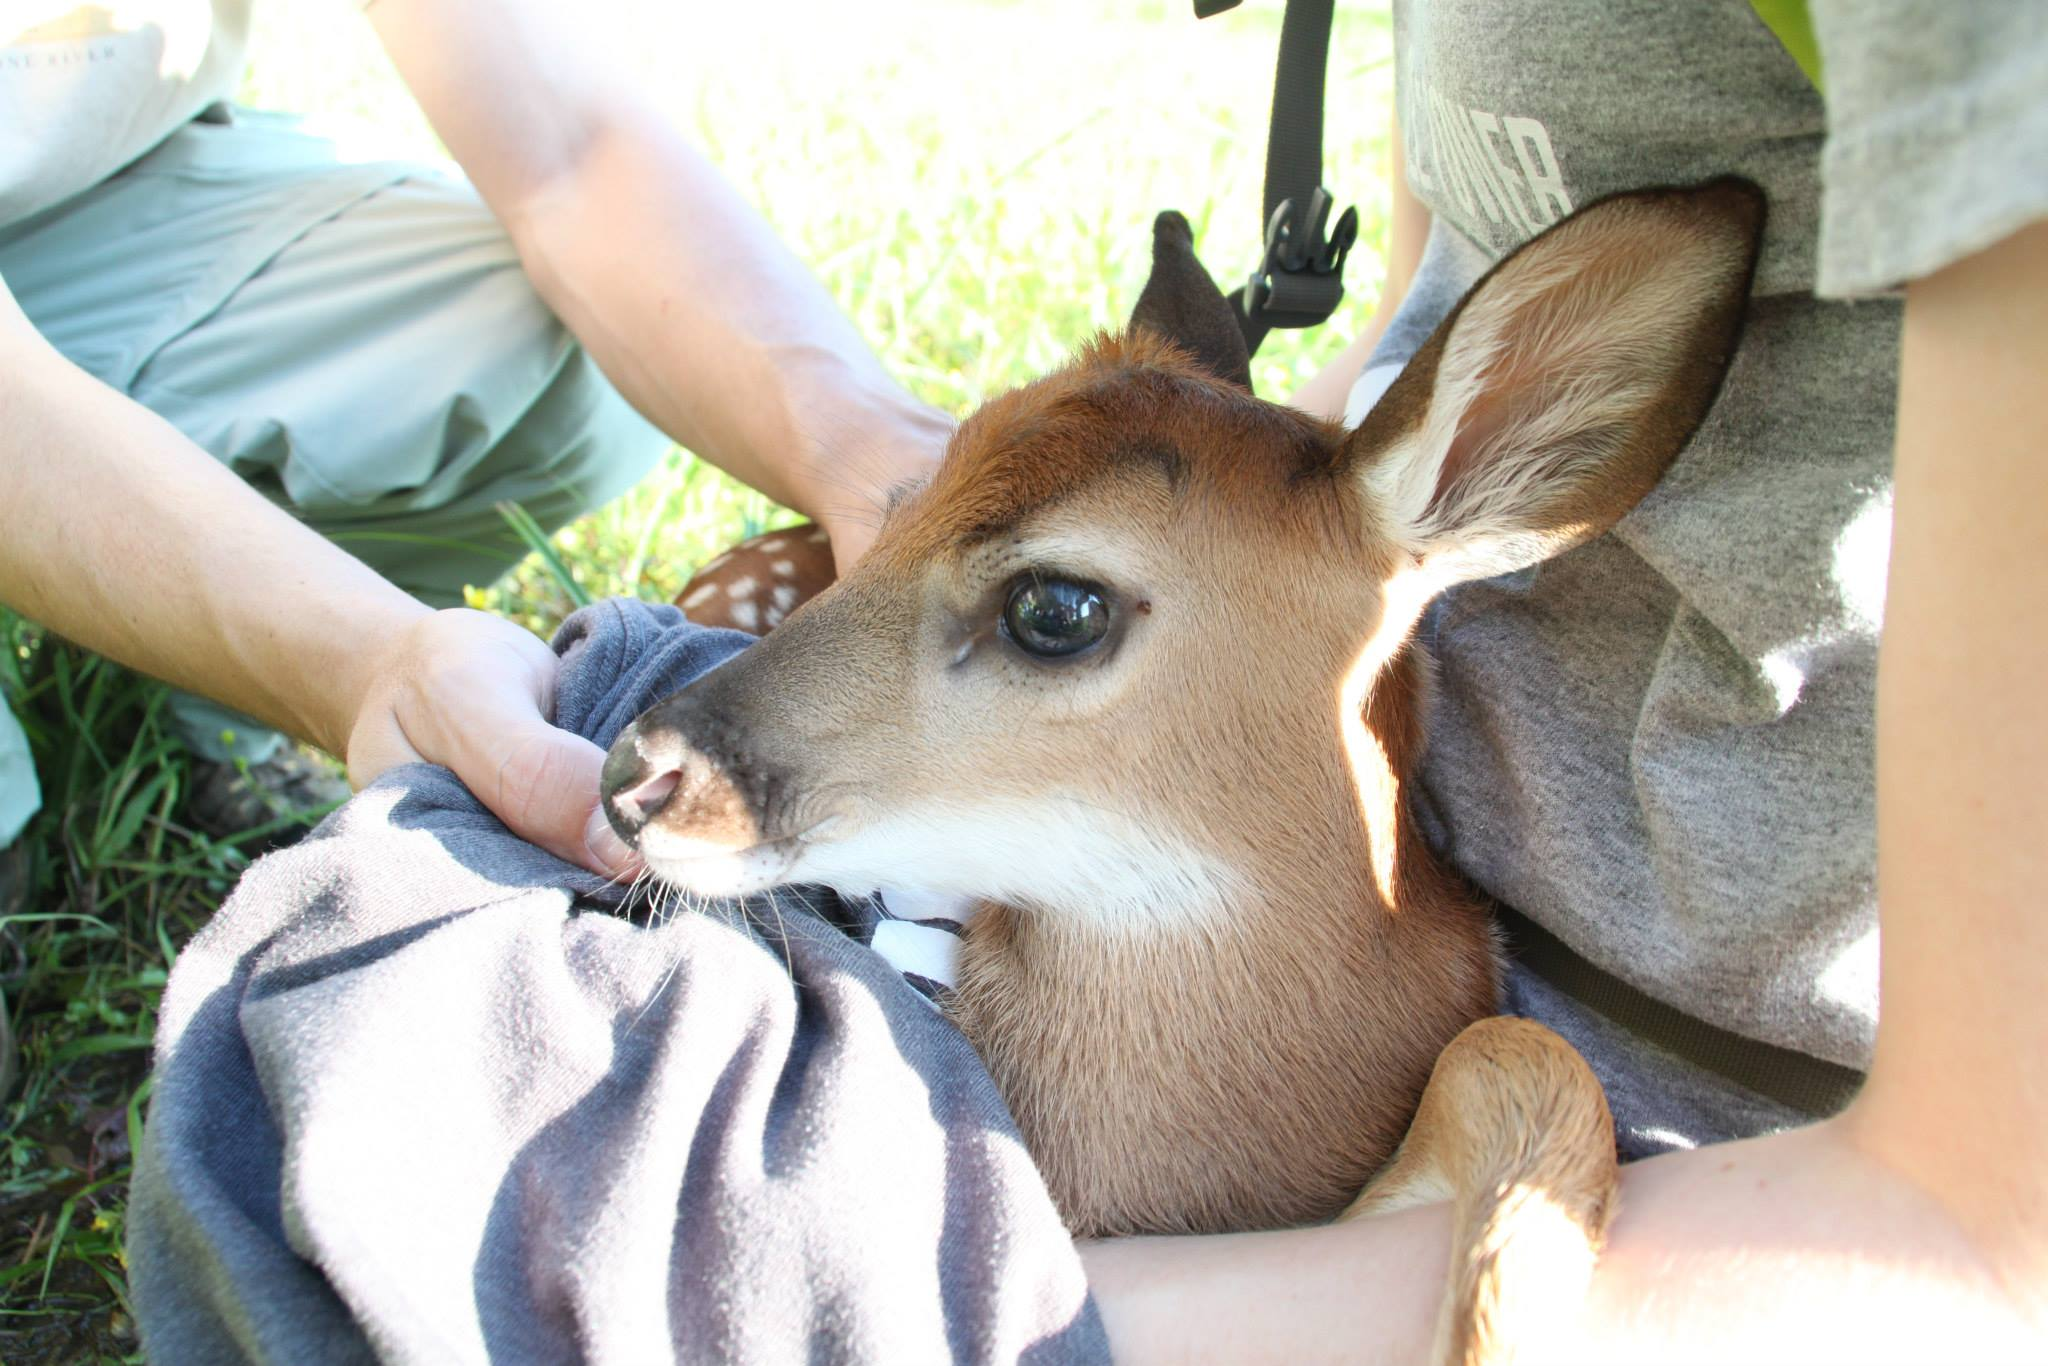 Holding baby fawn